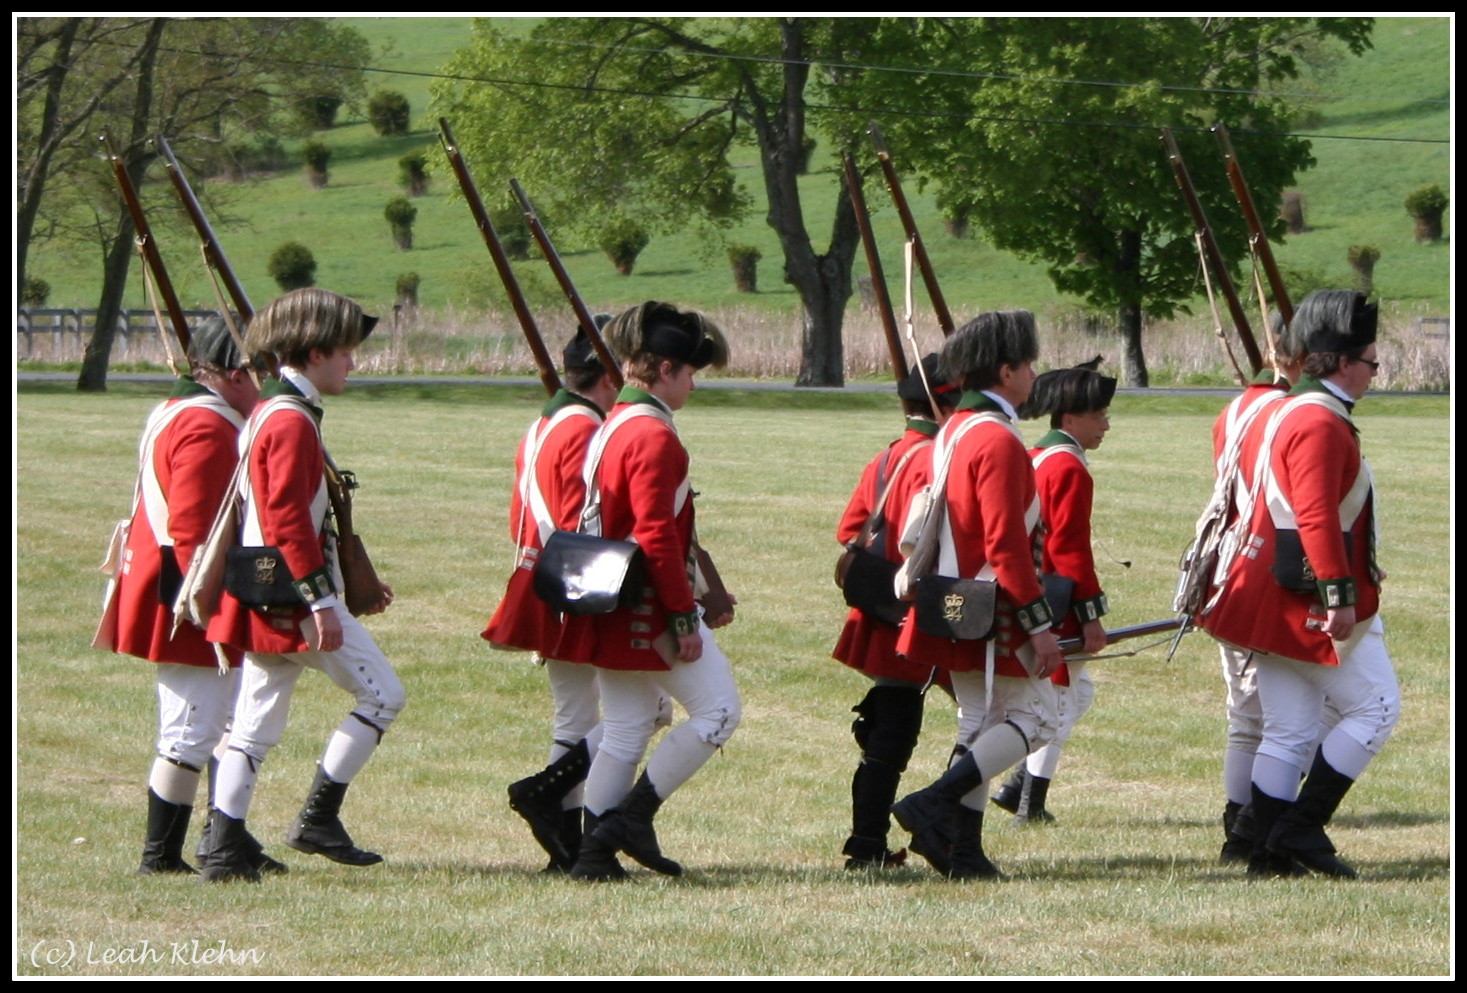 Revolutionary War Reenactment (4)